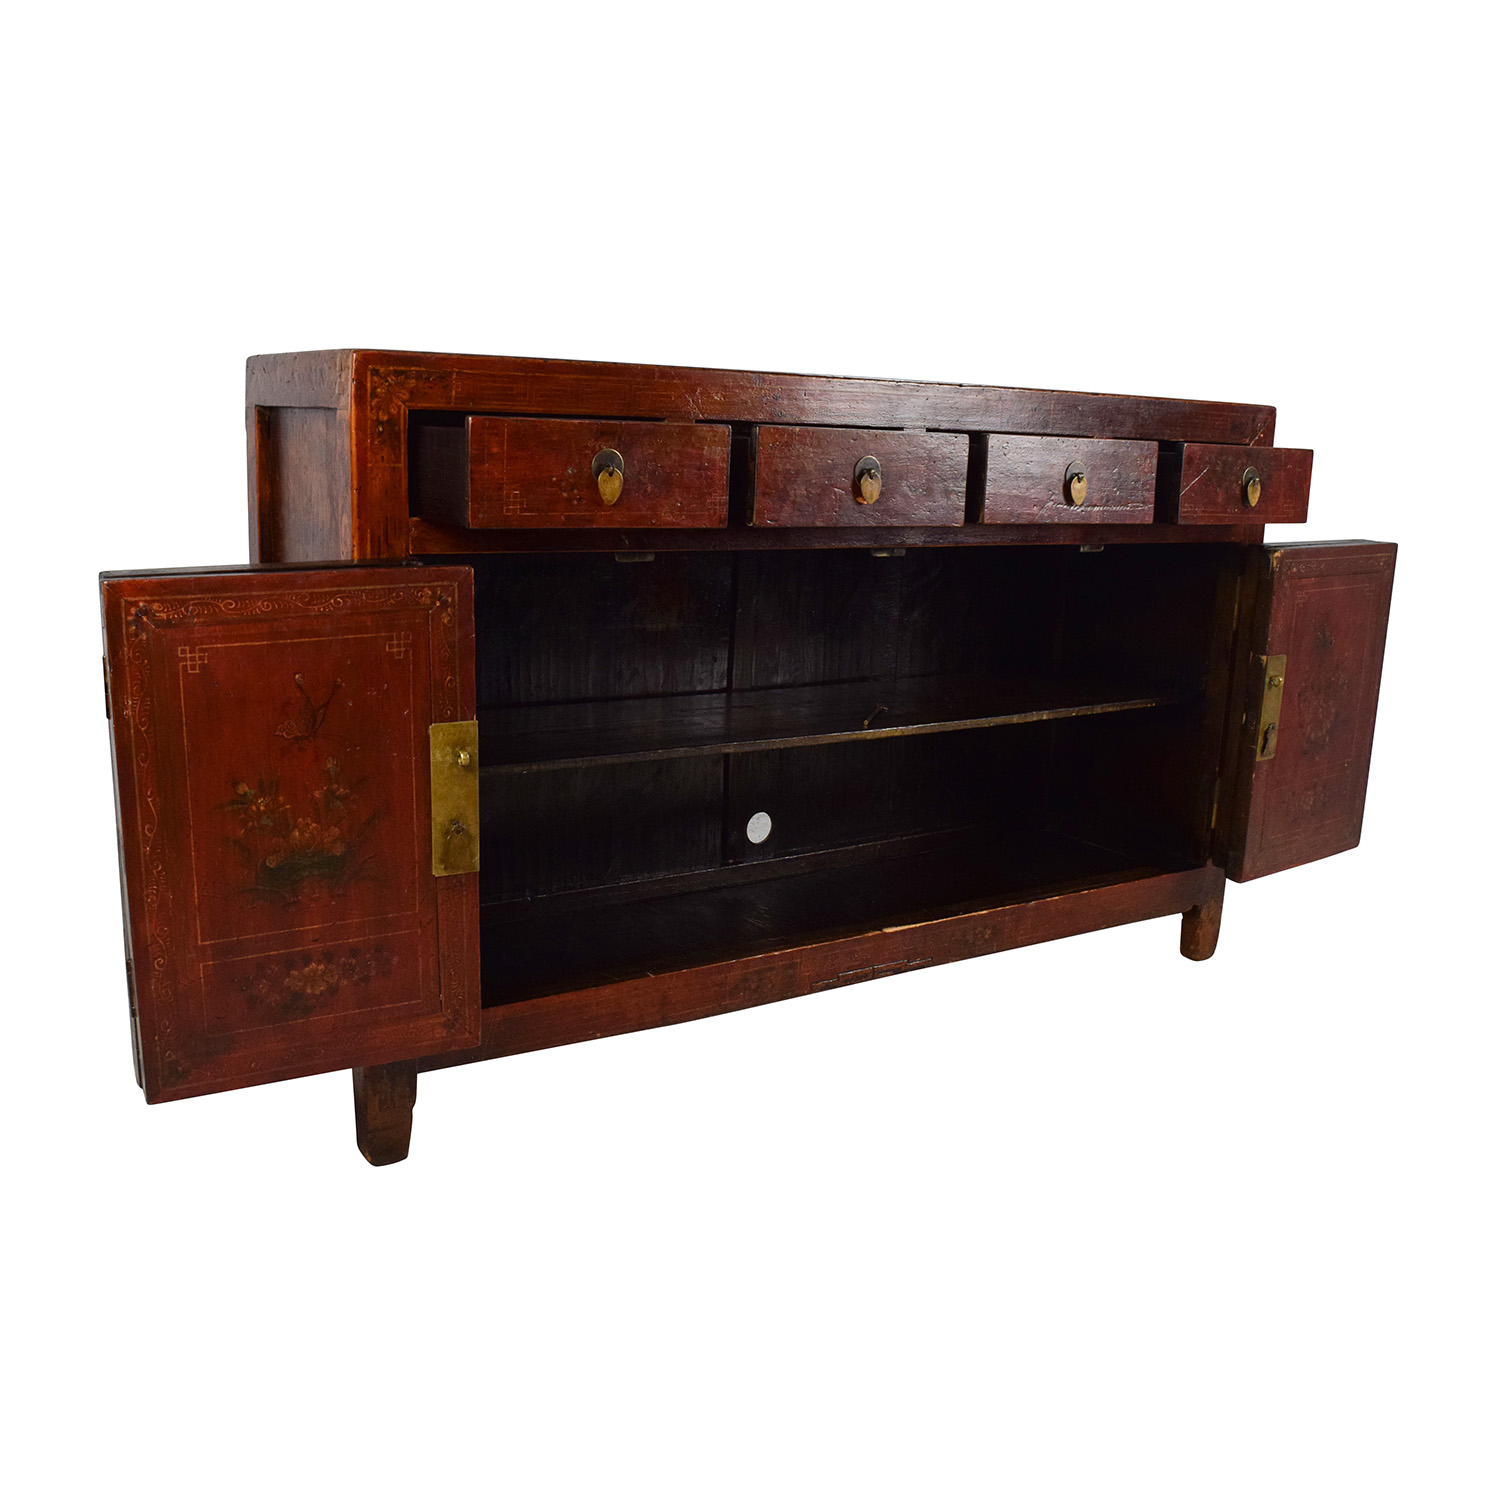 shop Solid Wood Southeast Asian Credenza Cabinets & Sideboards